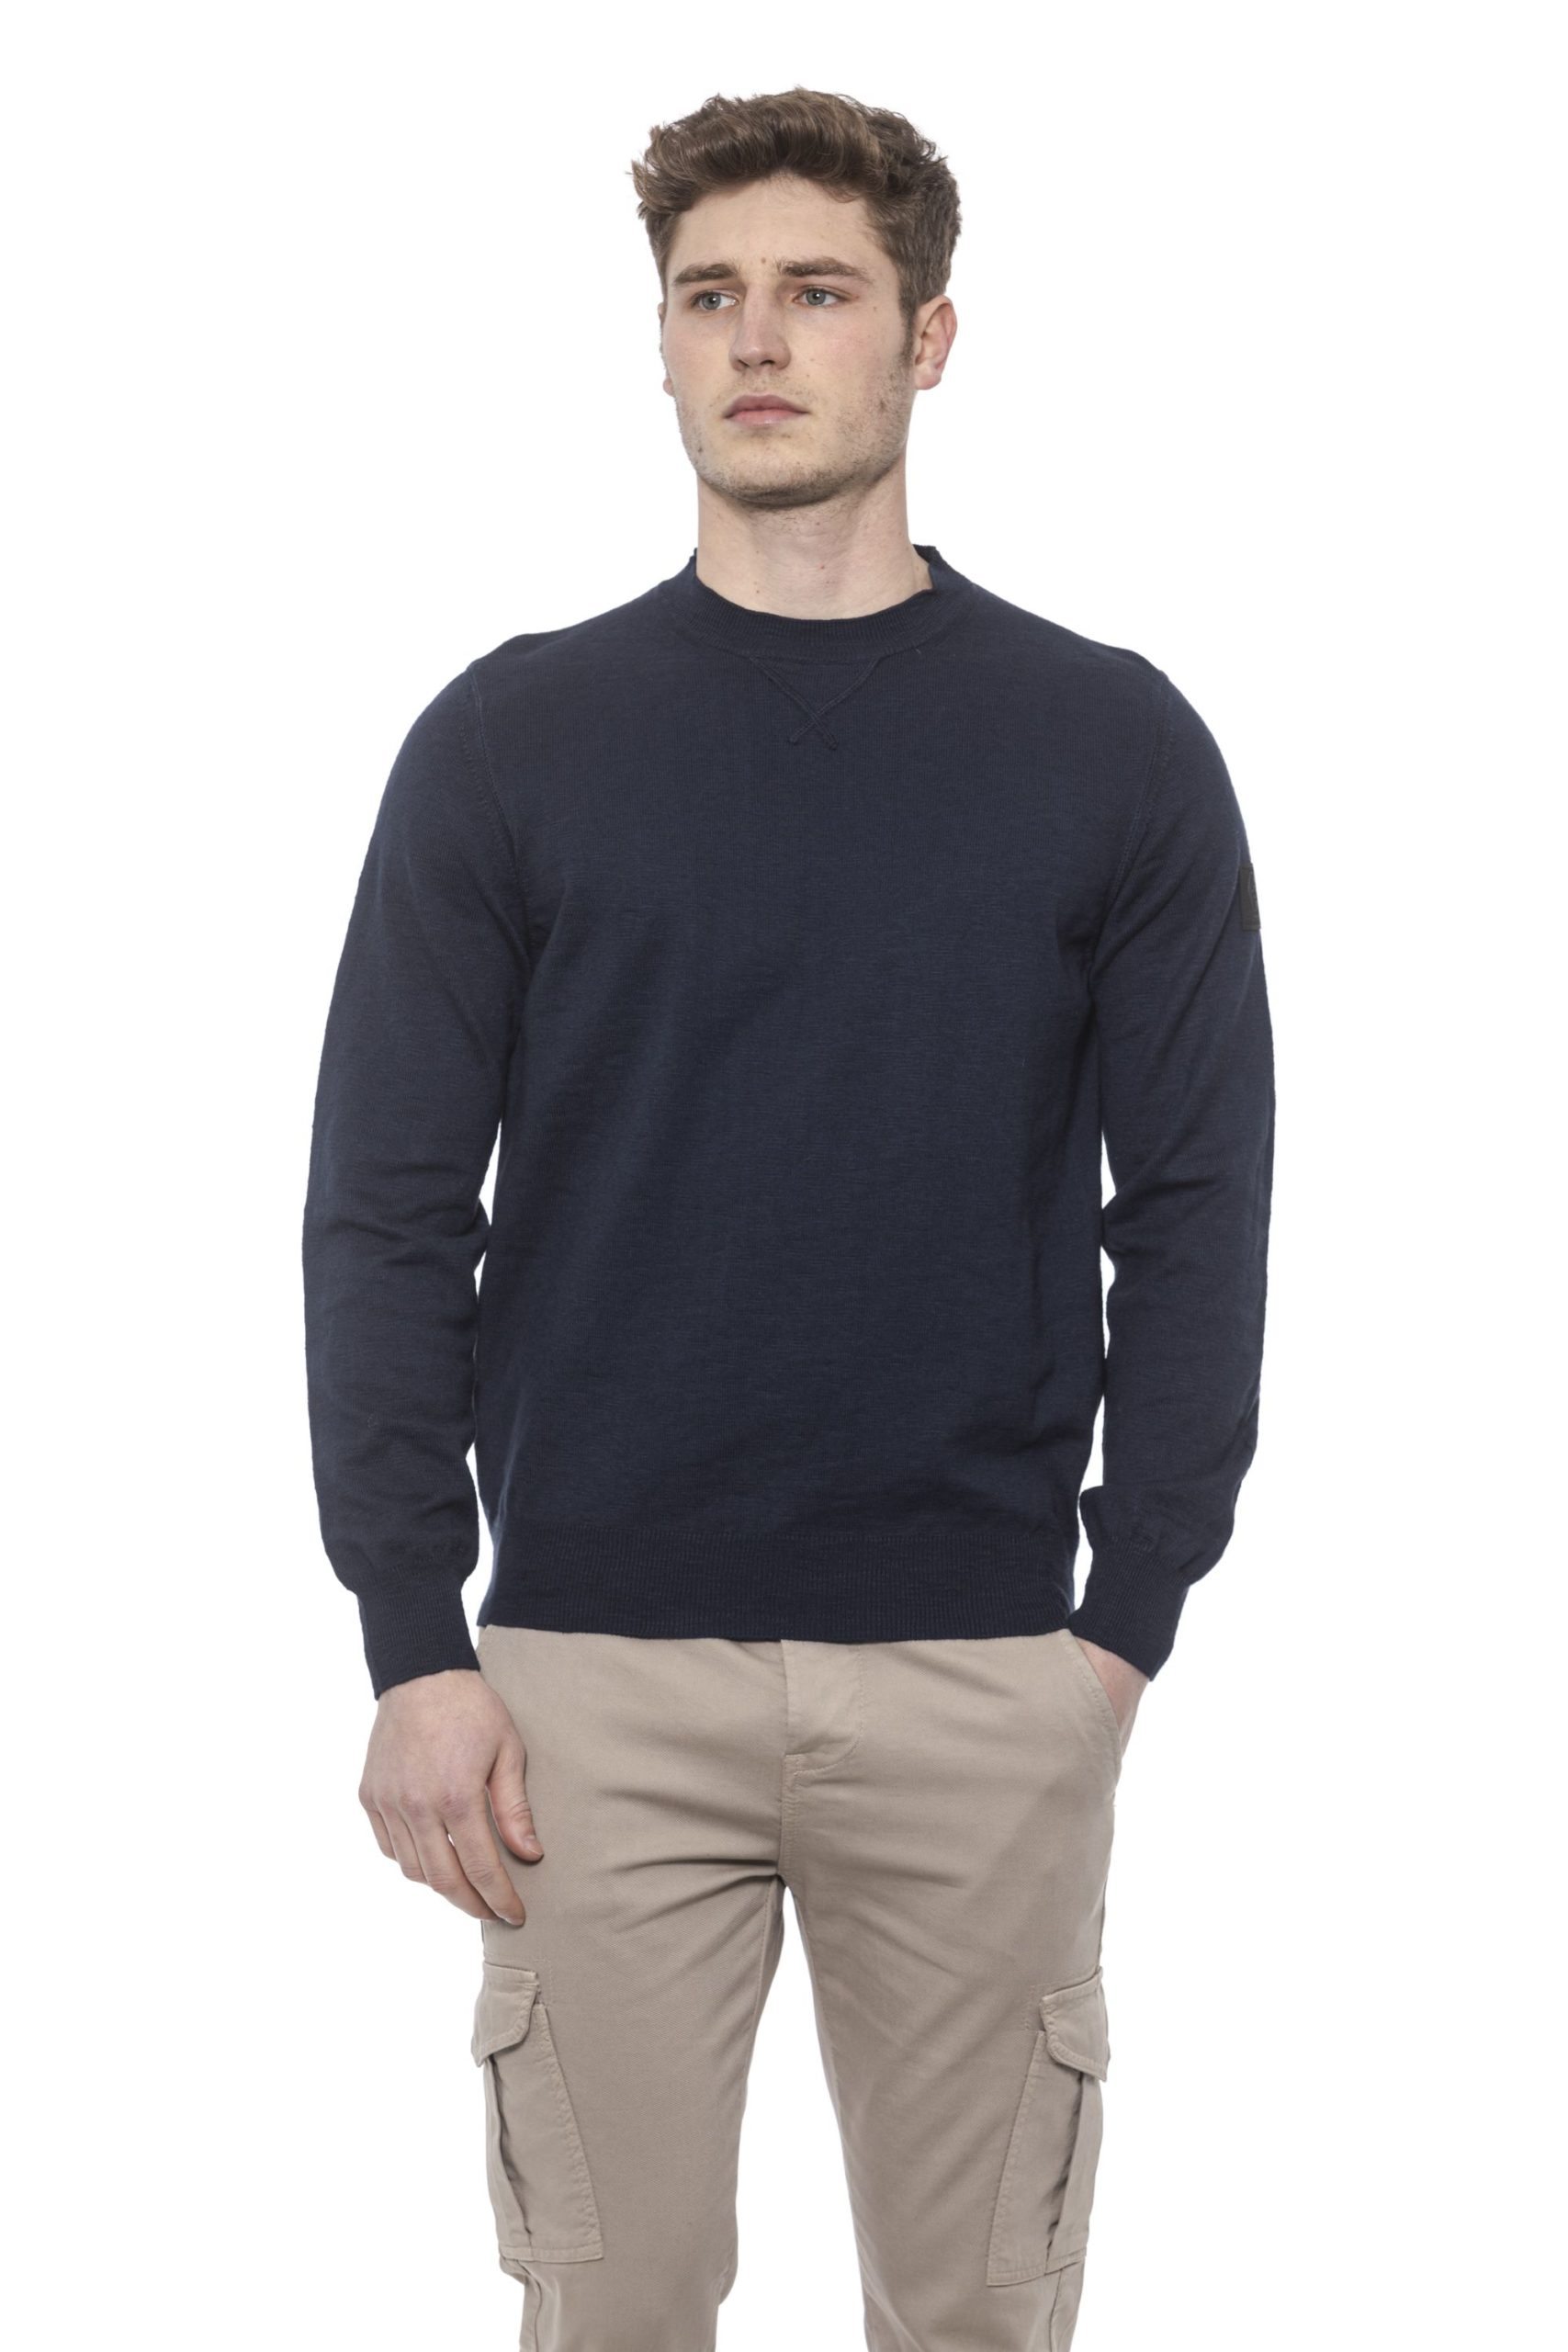 Conte of Florence Men's Sweater Blue CO1376492 - S